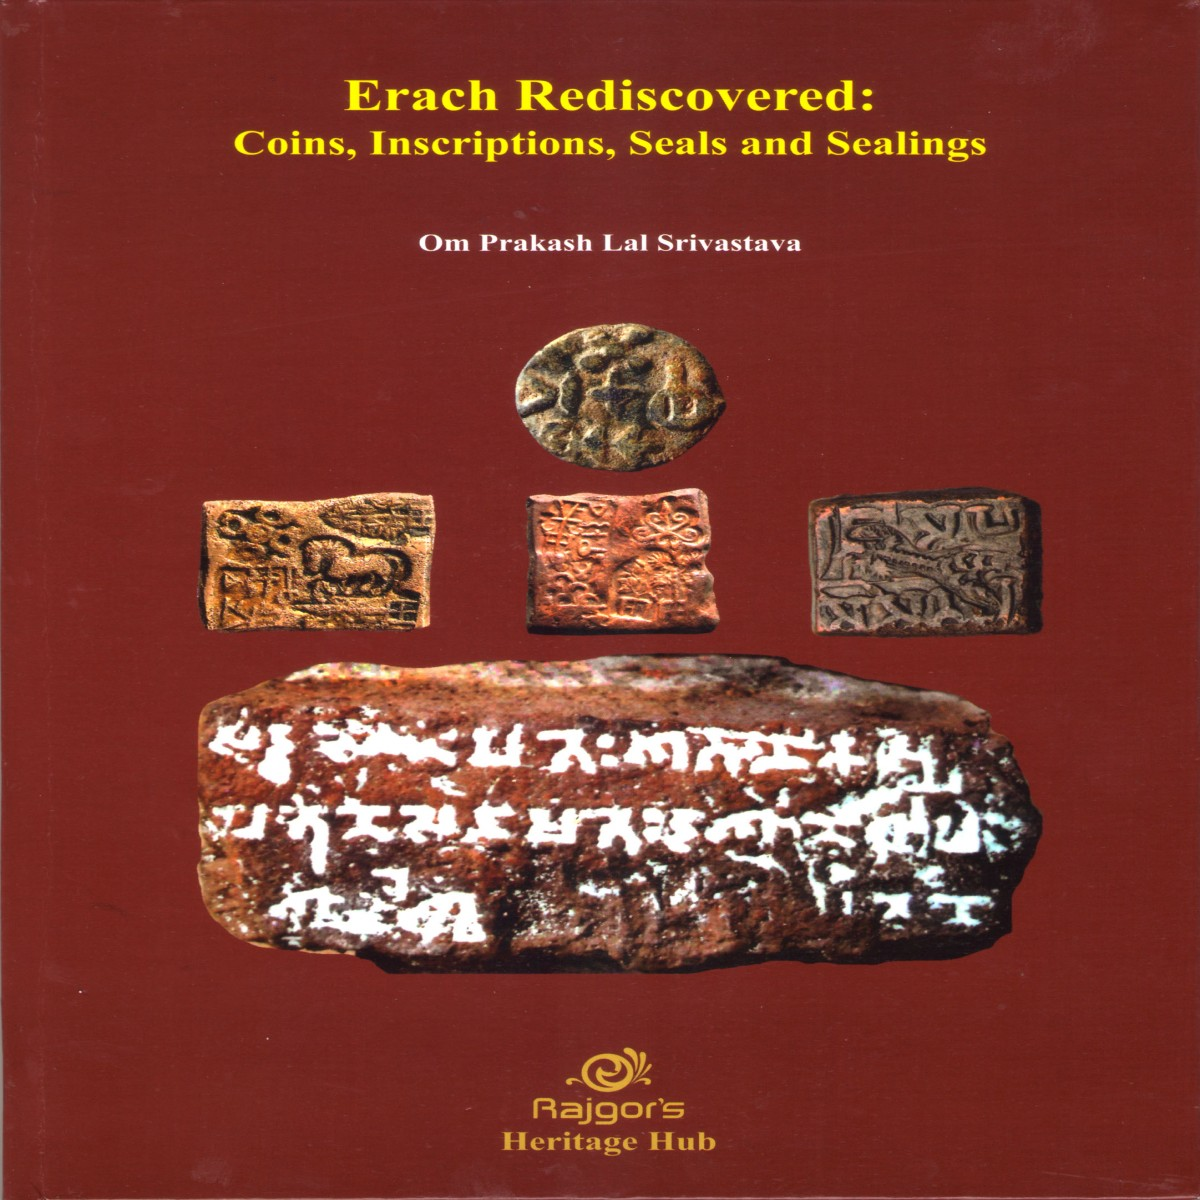 Erach Rediscovered: Coins, Inscriptions, Seals and Sealings